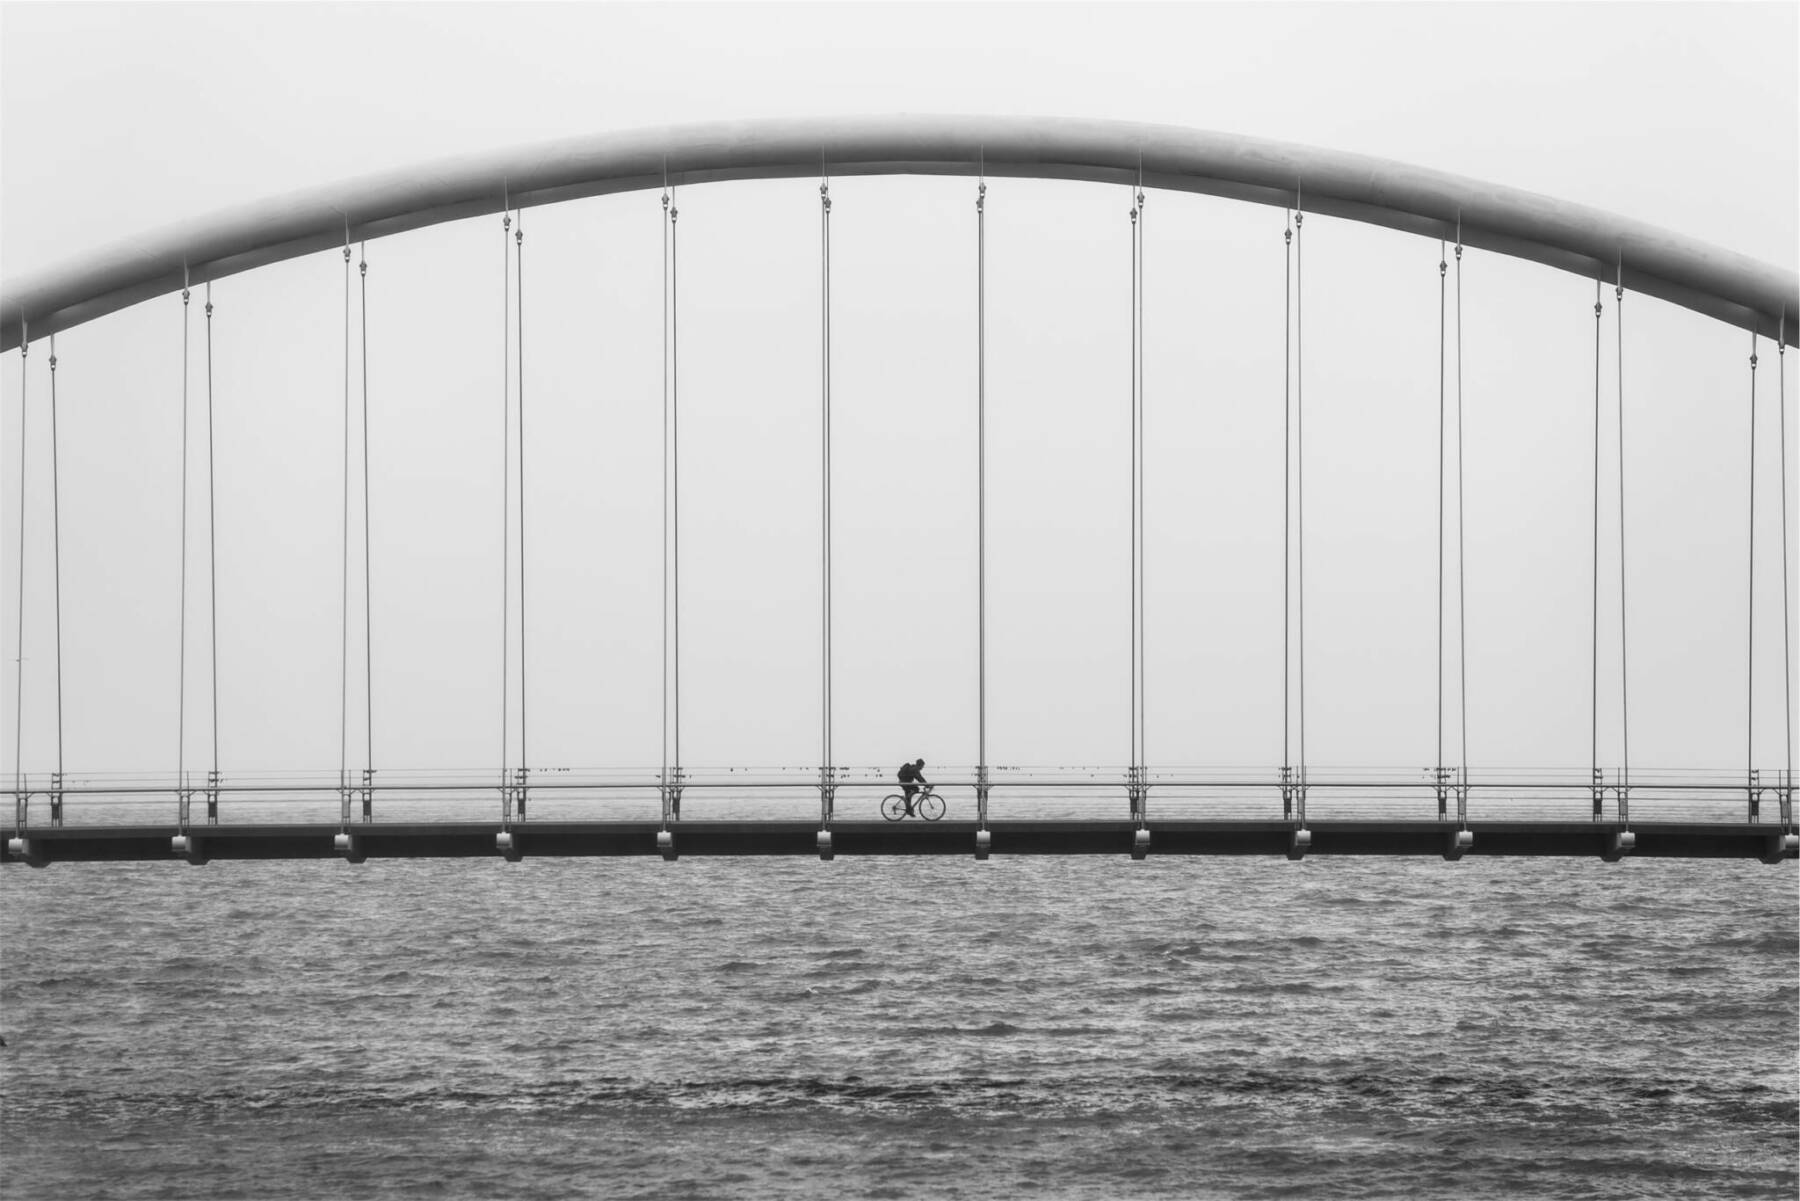 A bridge with a lone bicycle riding on it